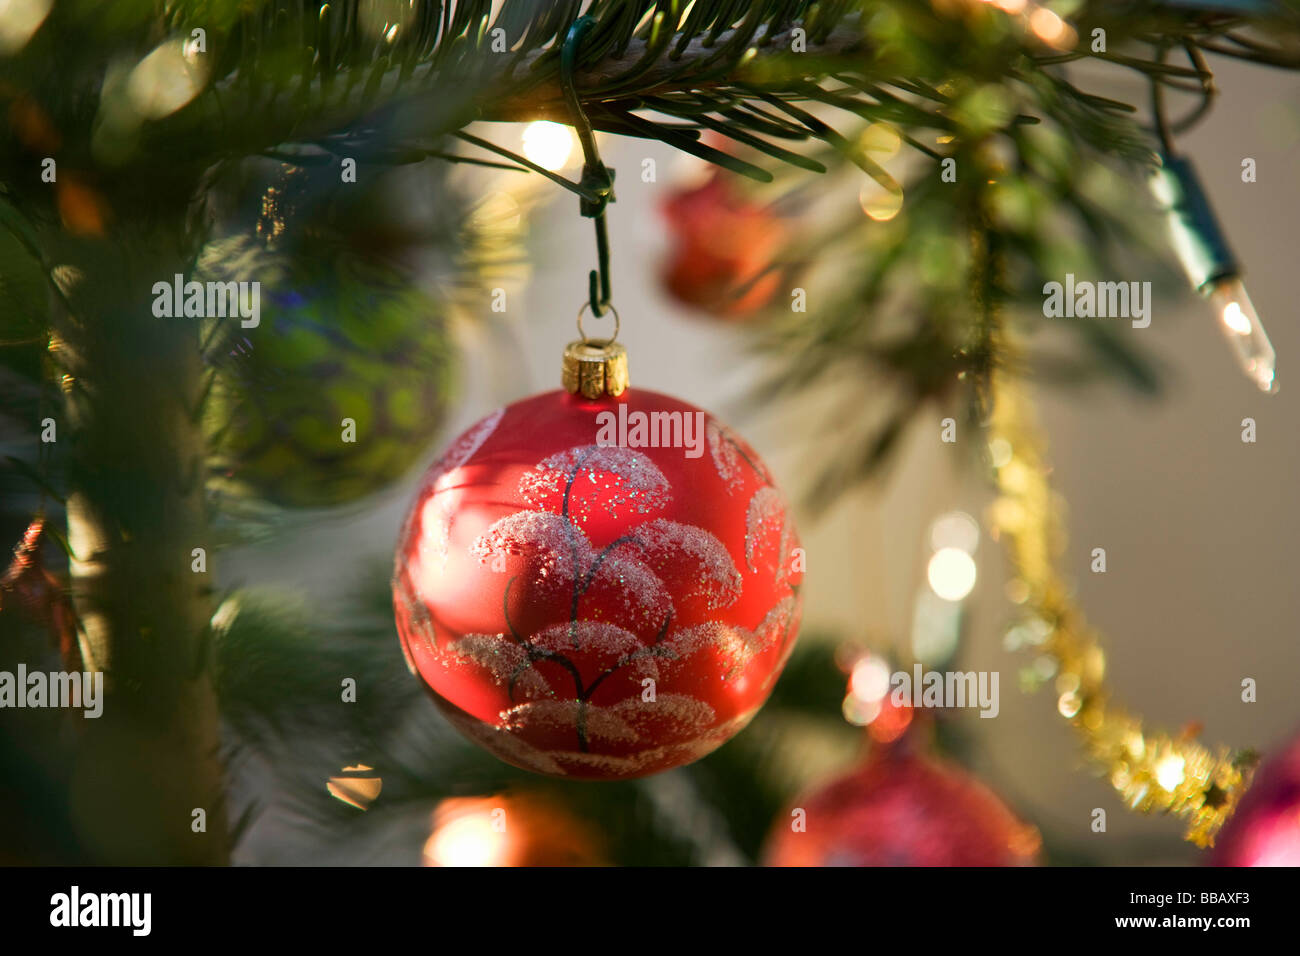 weihnachtsbaum dekoration stockfoto bild 24211911 alamy. Black Bedroom Furniture Sets. Home Design Ideas